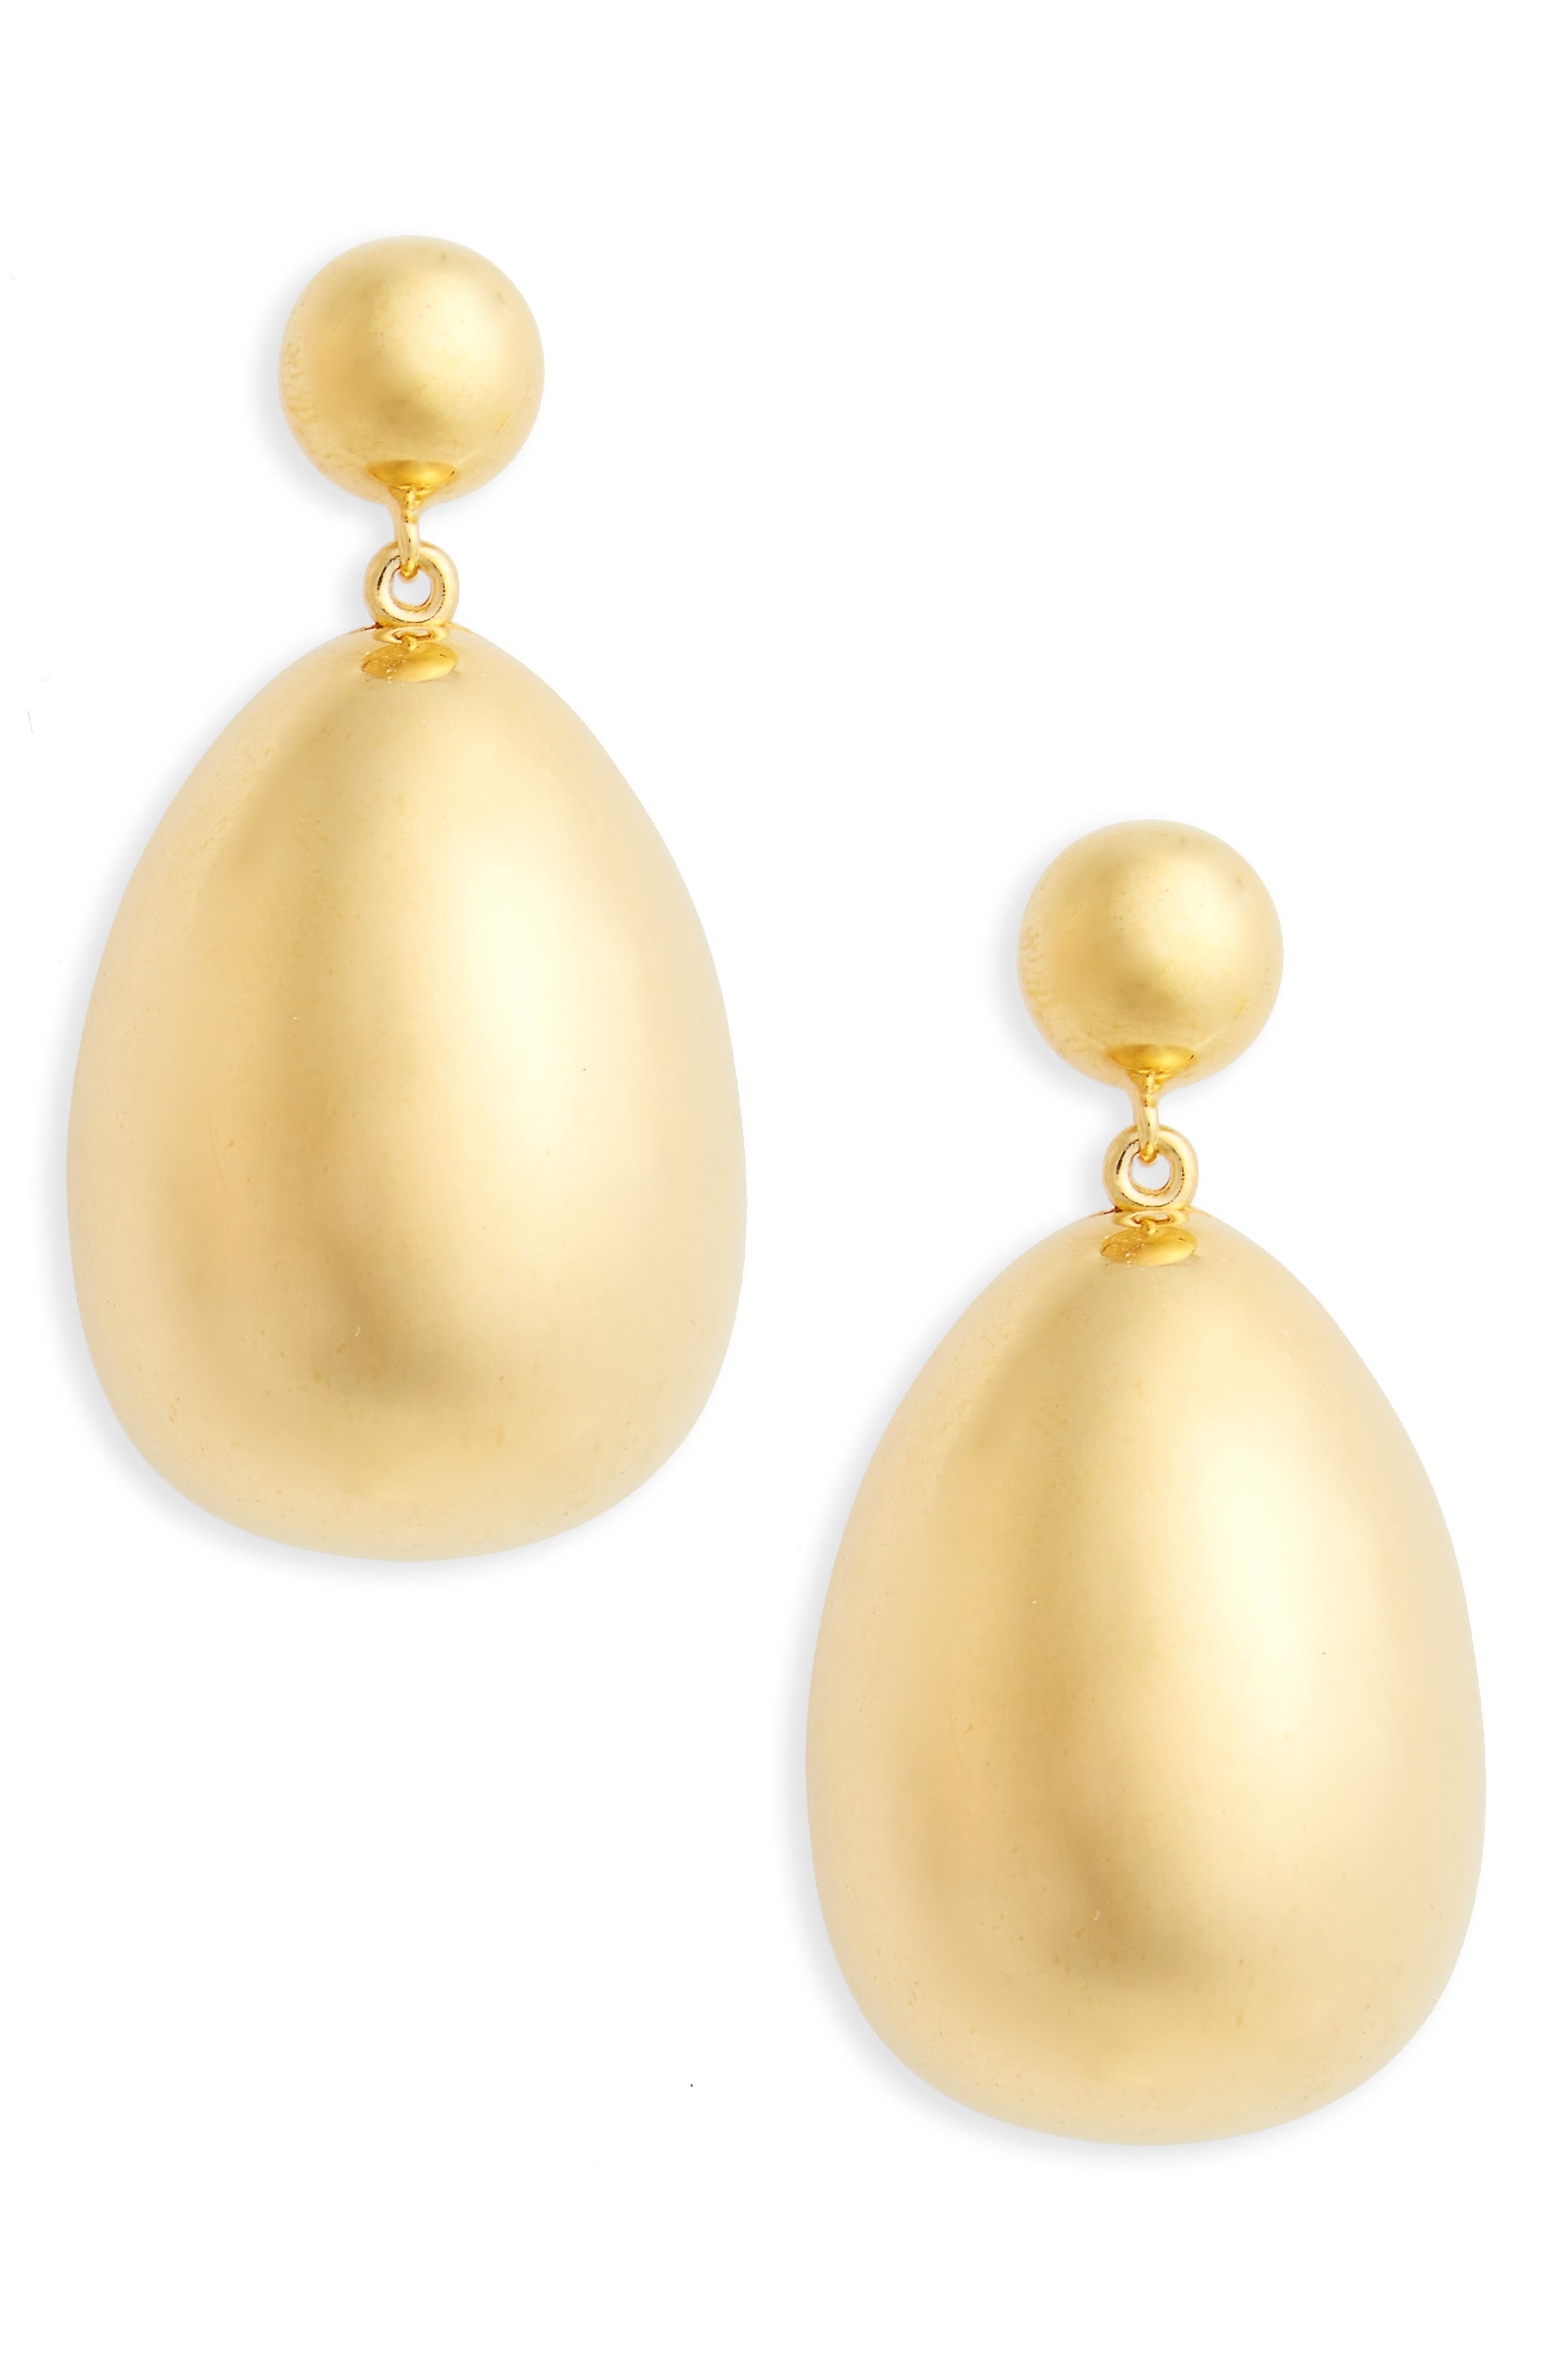 Vermeil Egg Drop Earrings,                             Main thumbnail 1, color,                             VERMEILL